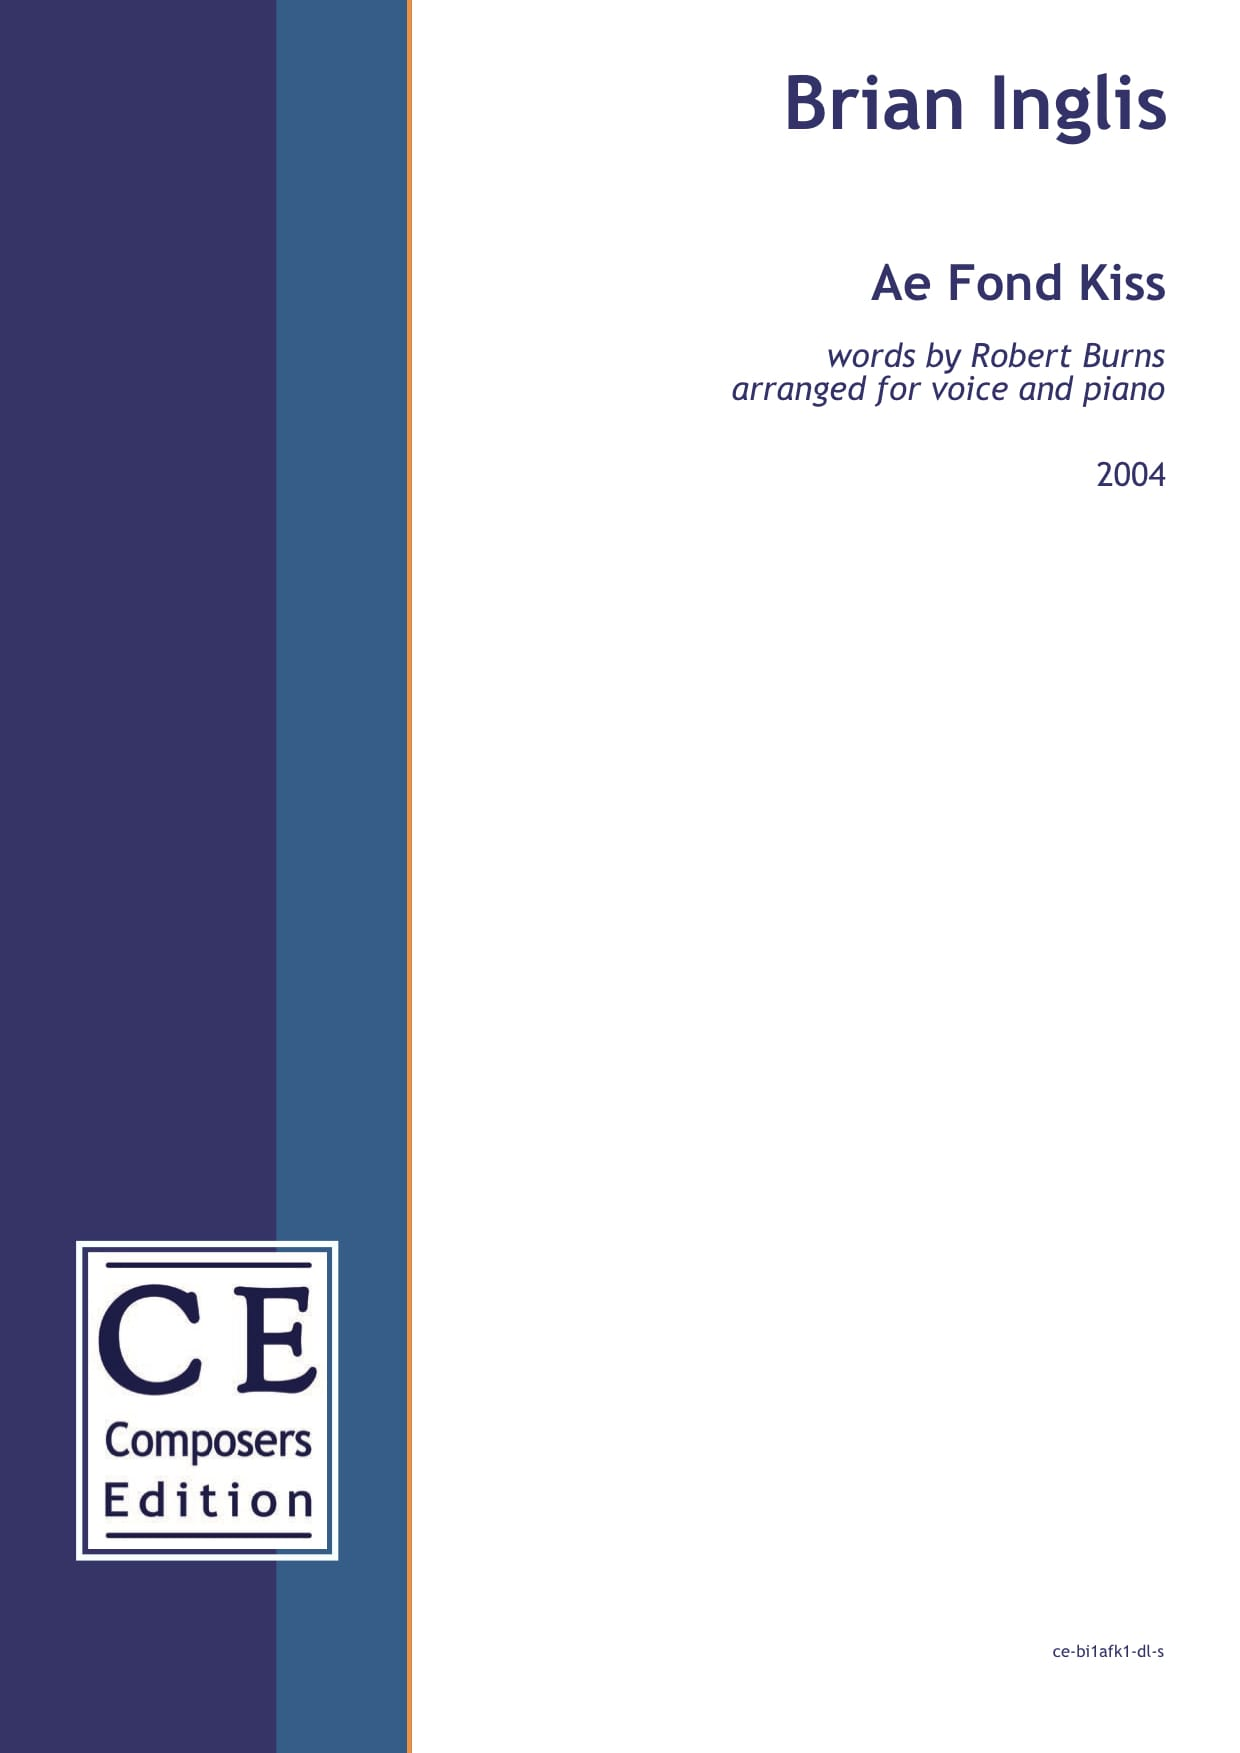 Brian Inglis: Ae Fond Kiss words by Robert Burns arranged for voice and piano